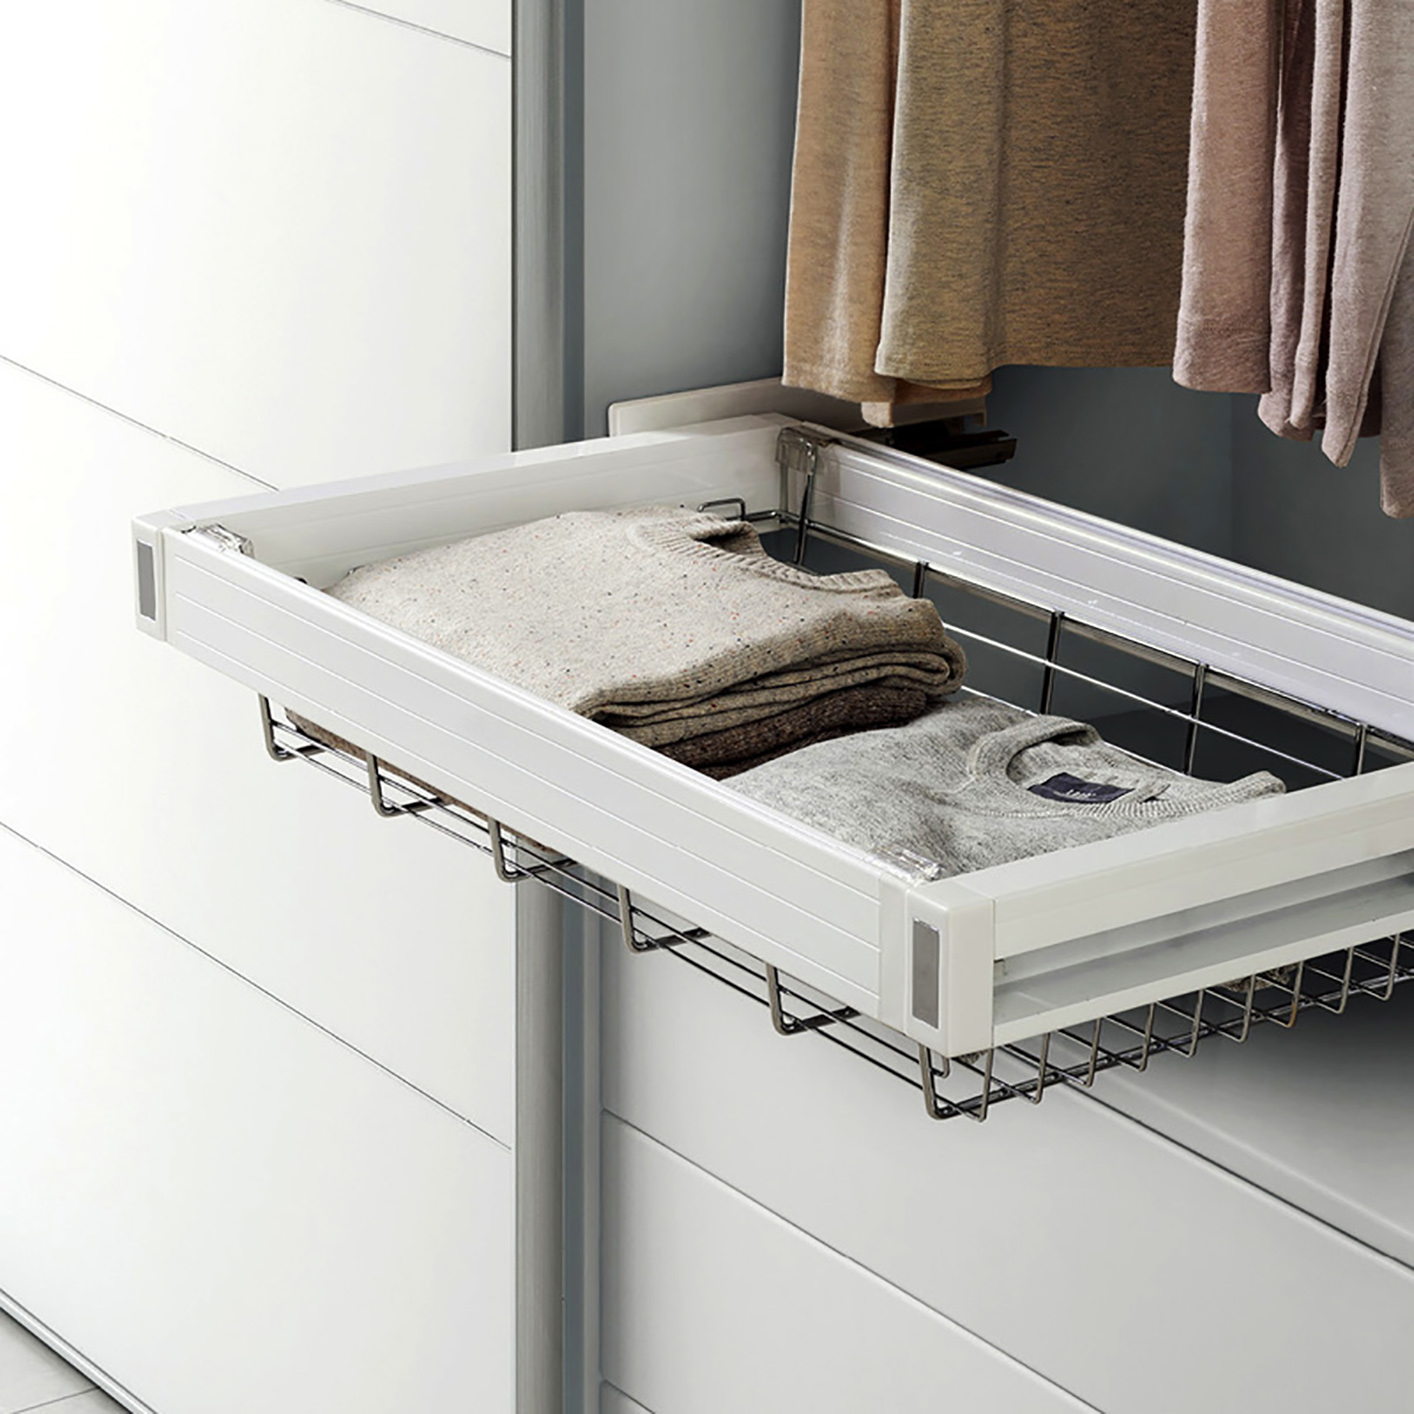 Kitchen Wardrobe Accessories: Symmetry Basket Pull-Out Soft Close (600mm Cabinet